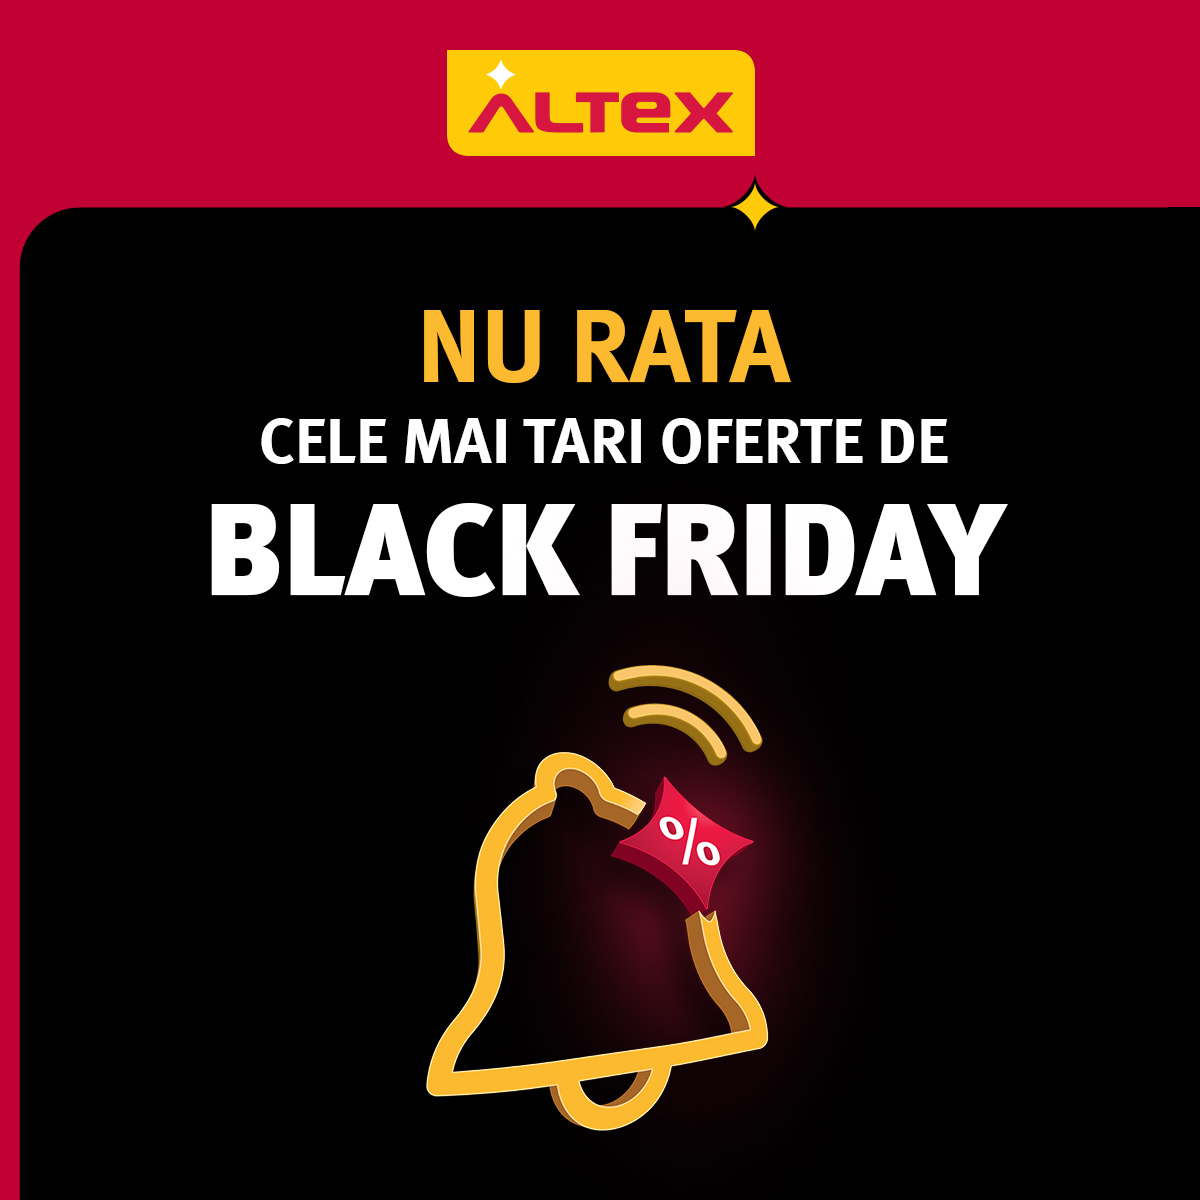 black friday oferte altex